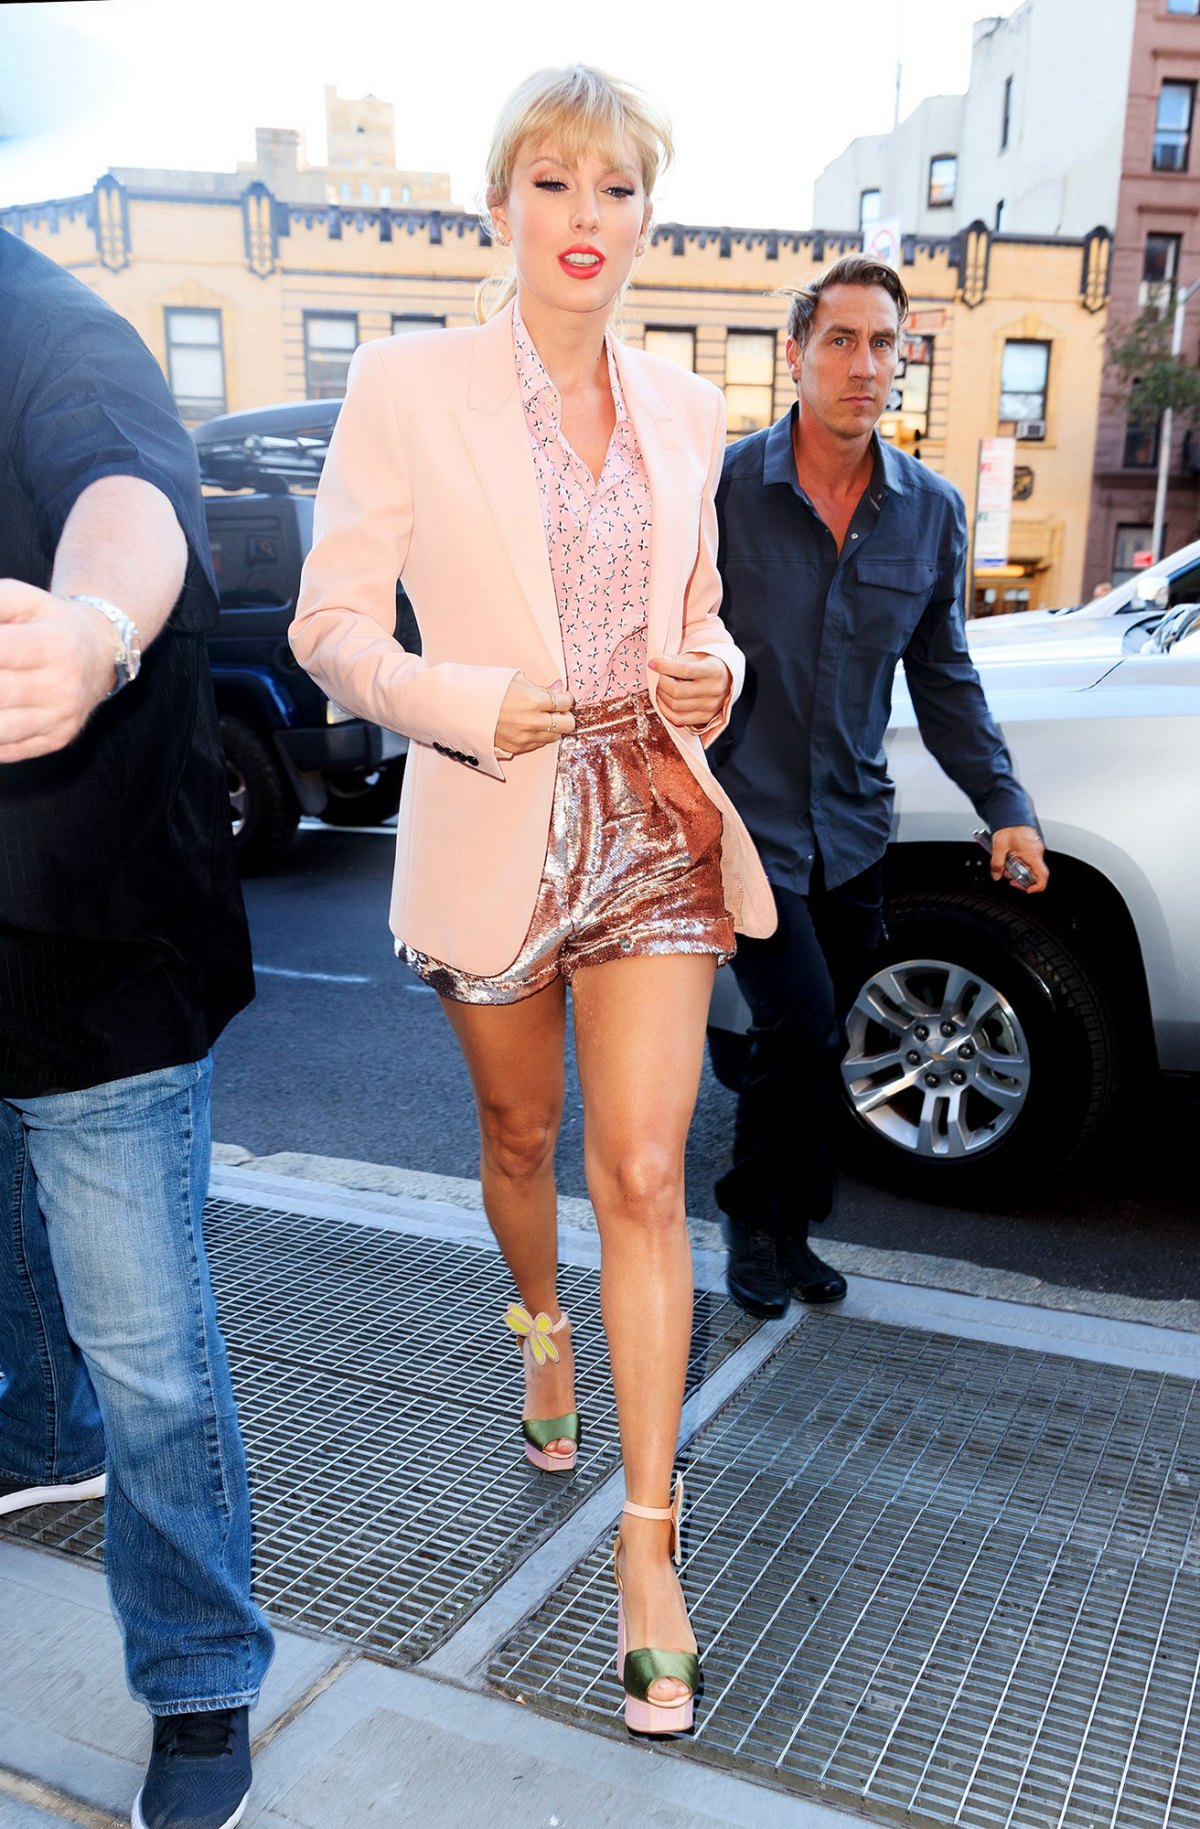 Hollywood's Best Legs - How Beyoncé, Taylor Swift, Ciara and More